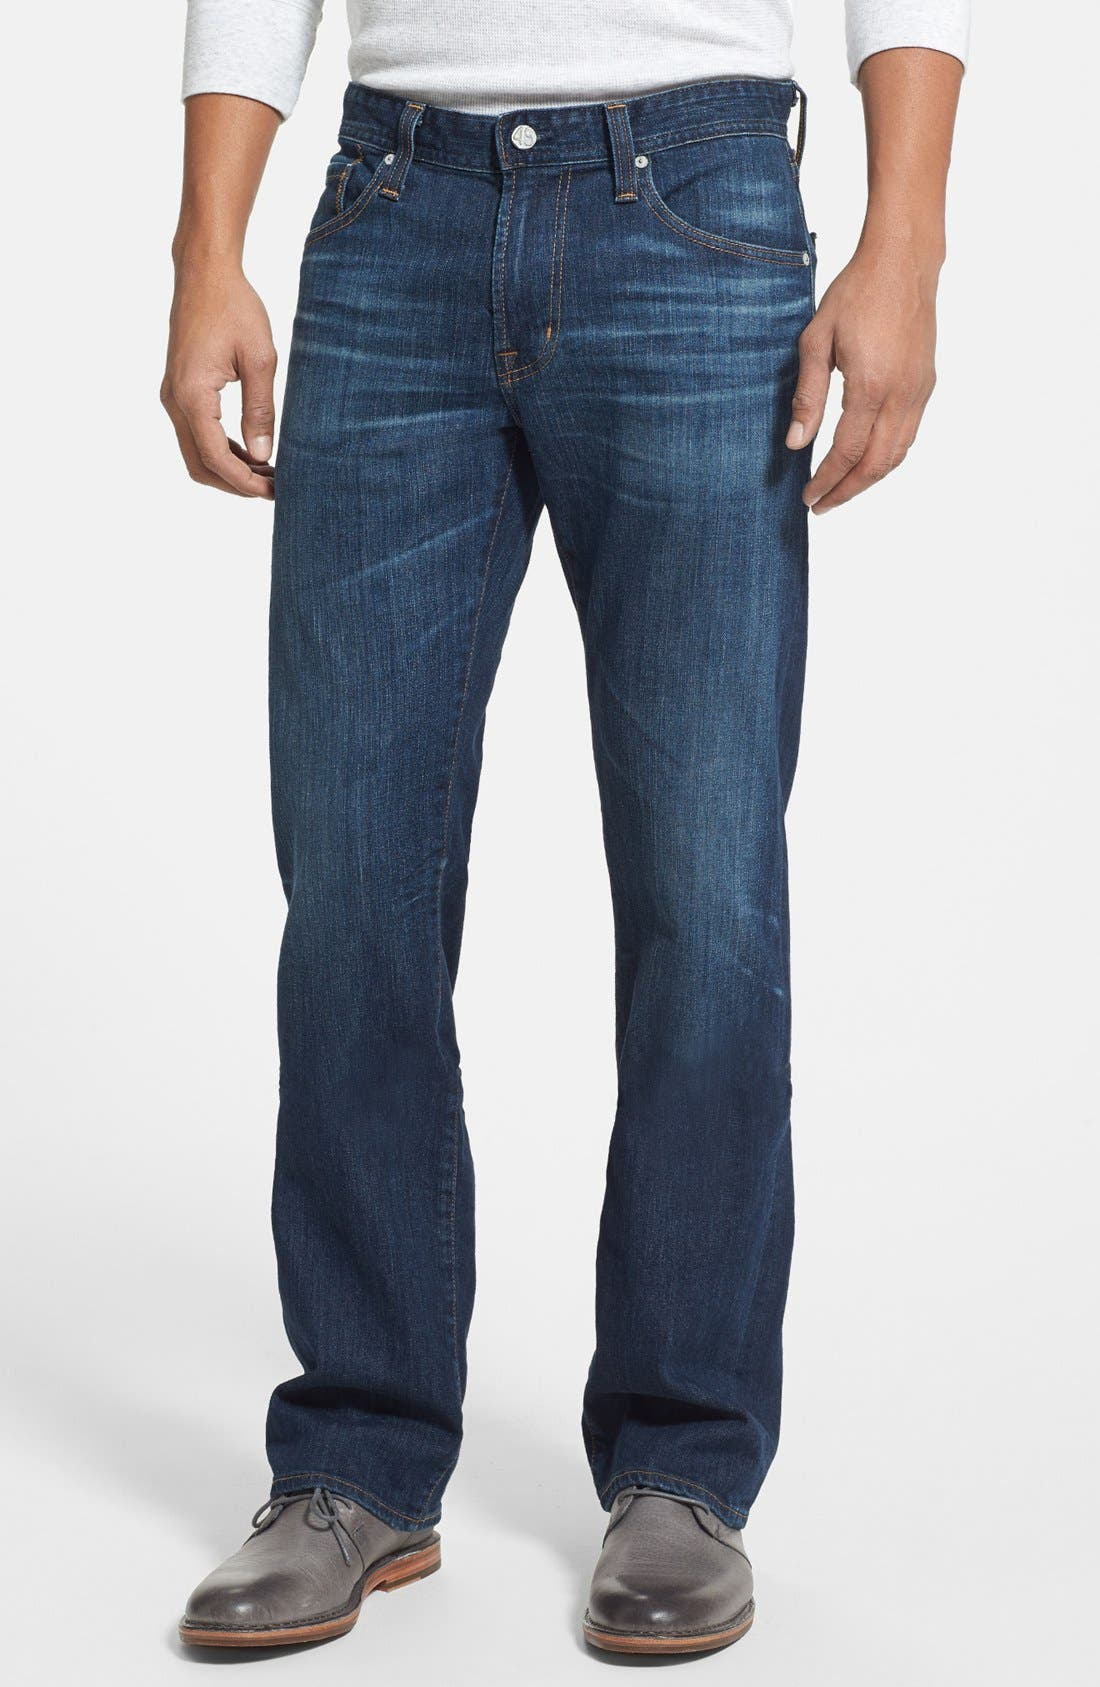 Alternate Image 1 Selected - AG 'Protégé' Straight Leg Jeans (4 Year Brisk)